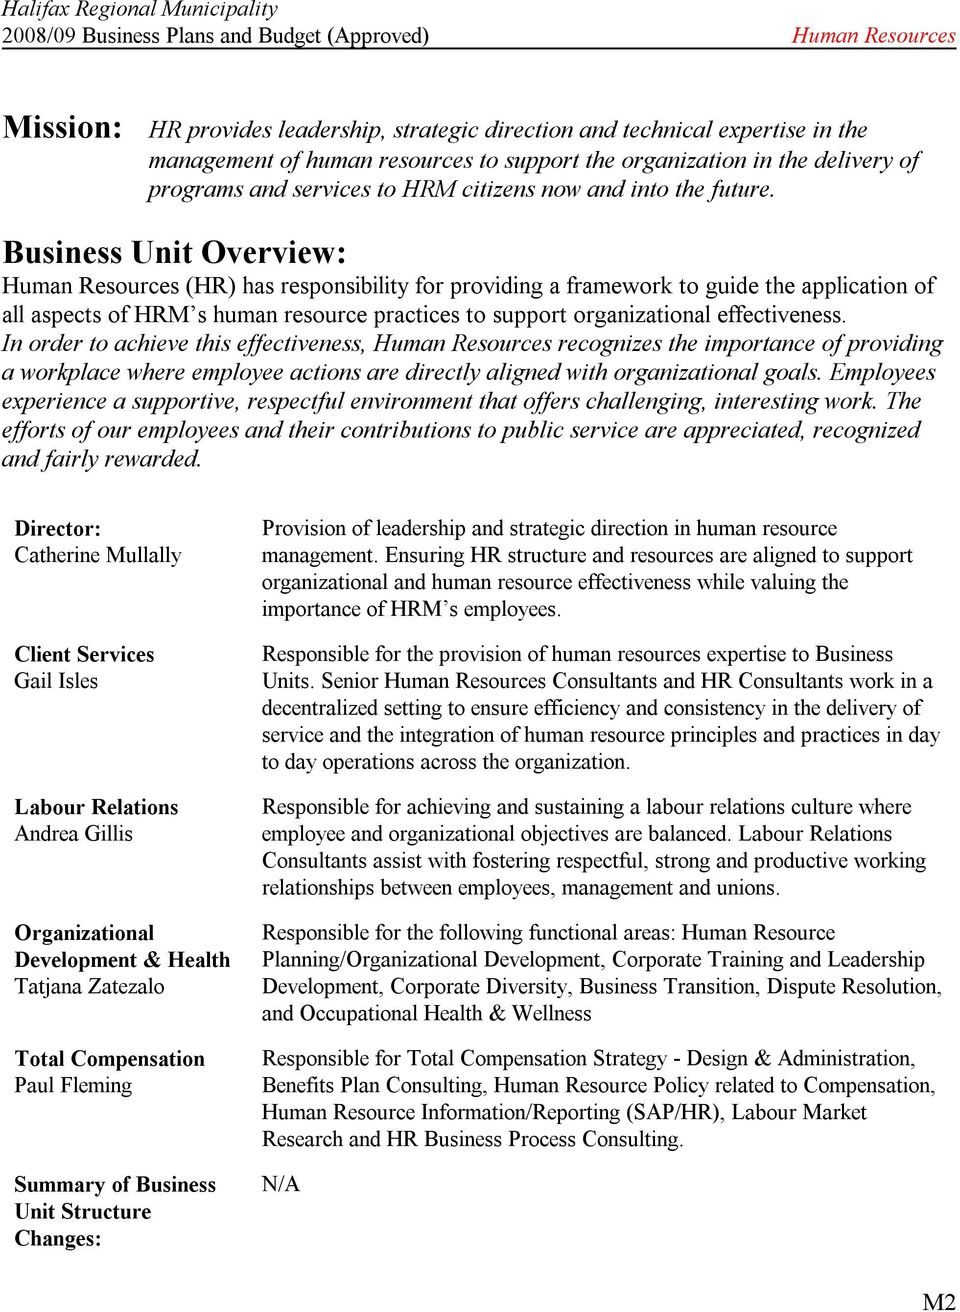 Business Unit Overview: Human Resources (HR) has responsibility for providing a framework to guide the application of all aspects of HRM s human resource practices to support organizational